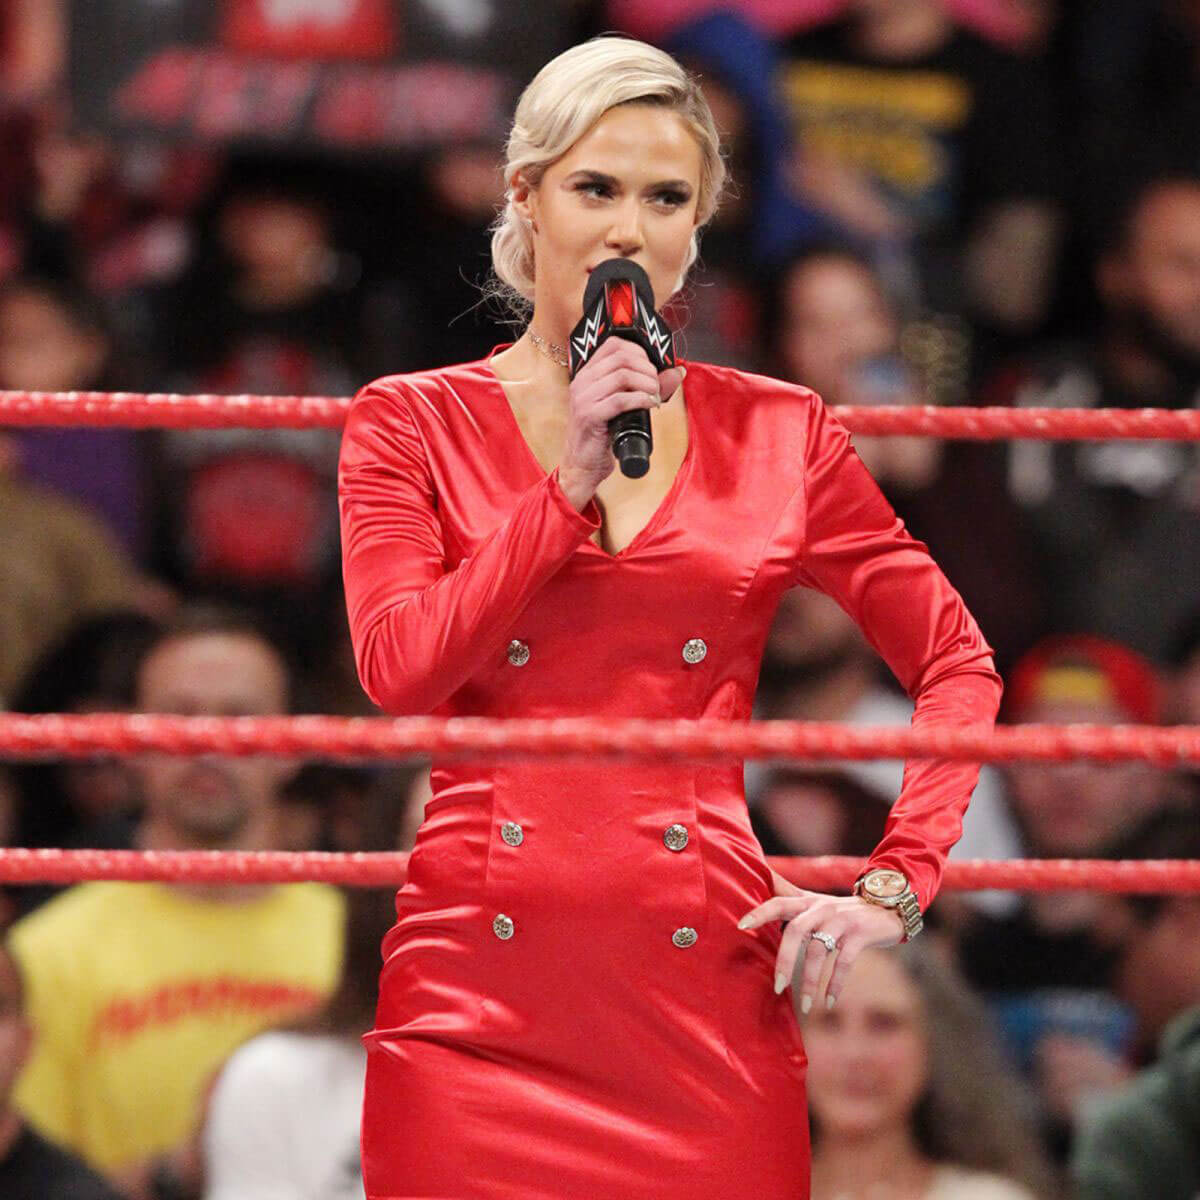 WWE RAW - Lana Photos in Red One Piece Dress